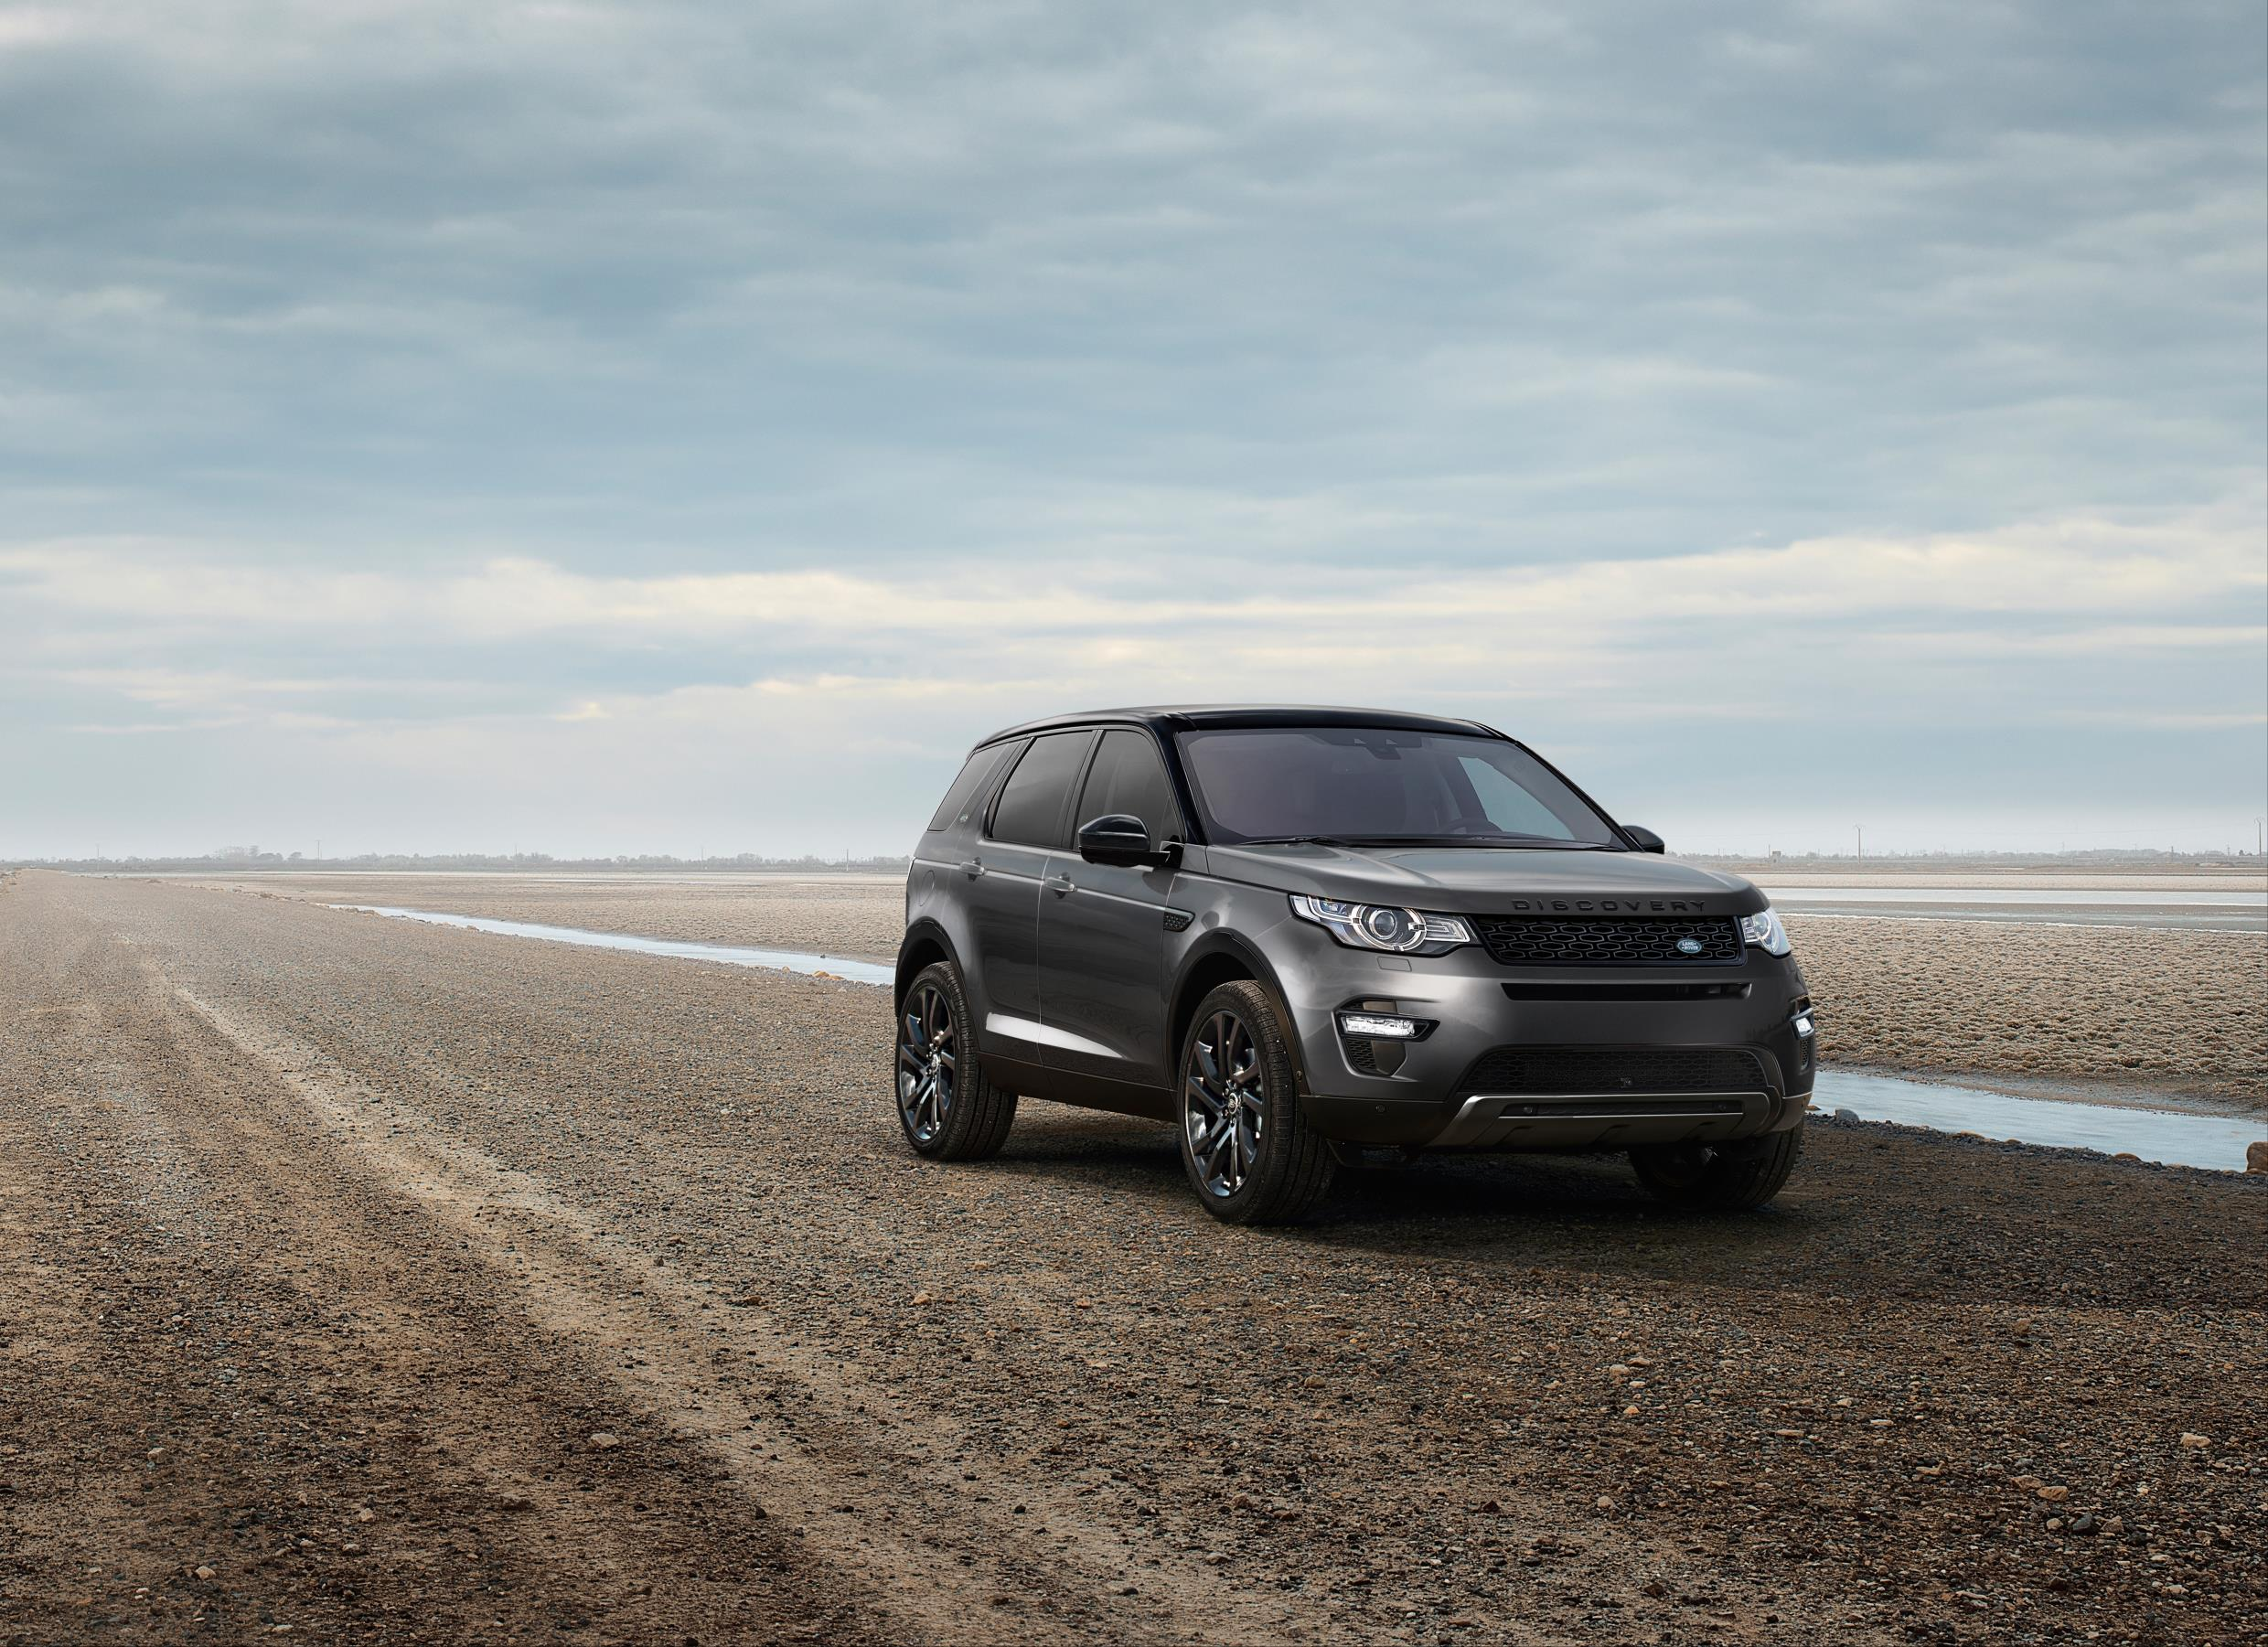 The Family Suv That Never Forgets The Updated Land Rover